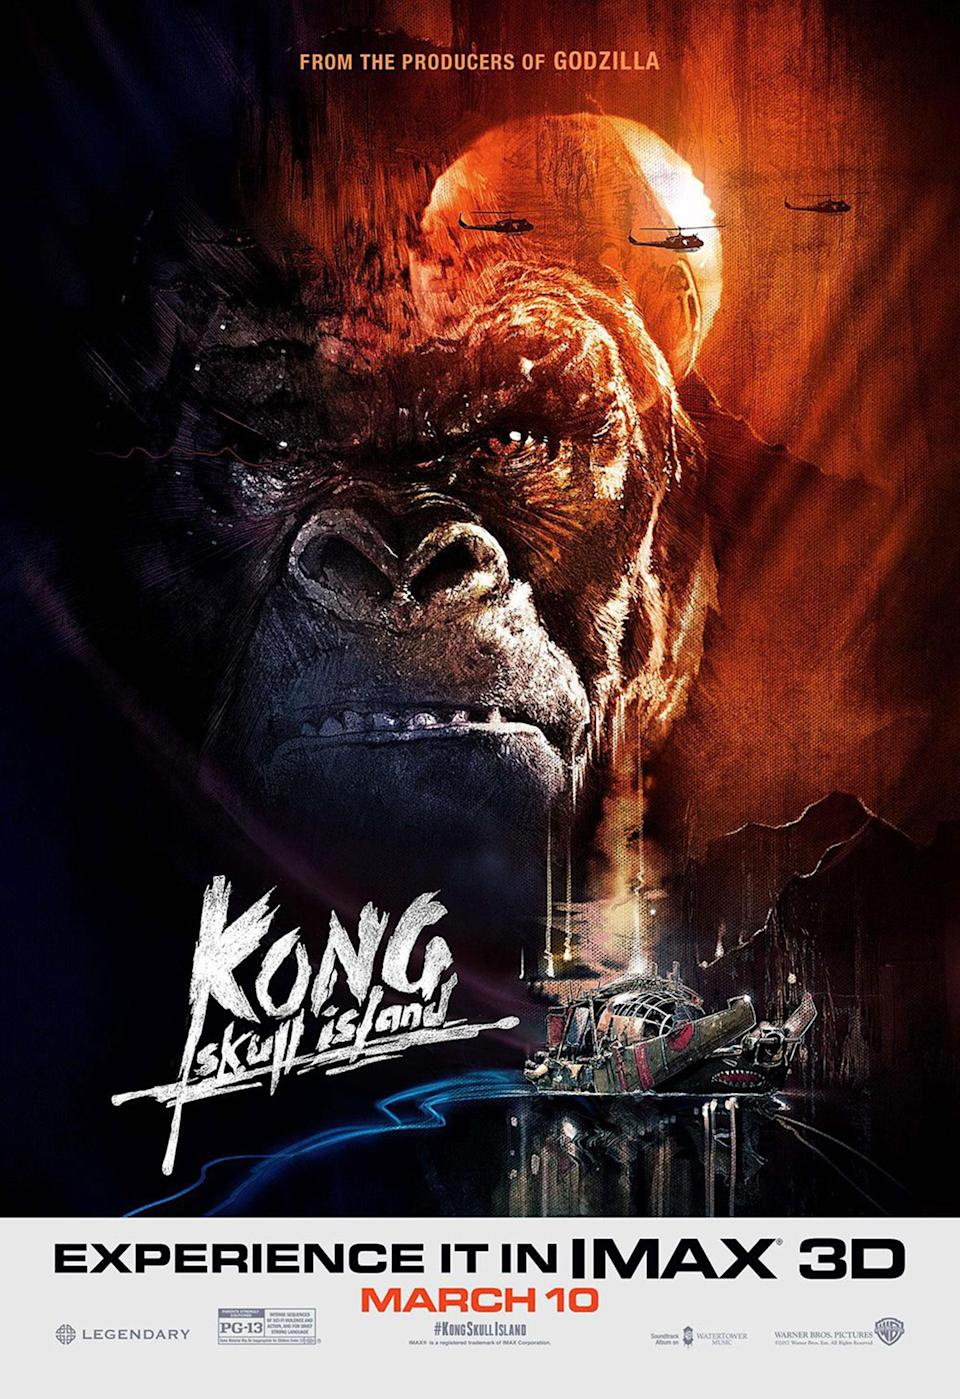 <p>Everyone loves a '70s throwback, and this IMAX special for 'Kong: Skull Island' casts us right back to the movie's 'Apocalypse Now' era, but with the beast himself taking the Marlon Brando role. After this and the stylish 'Godzilla' posters from 2014, we can only hope the creative is quite as on point when Kong meets the King of the Monsters in 2020. </p>